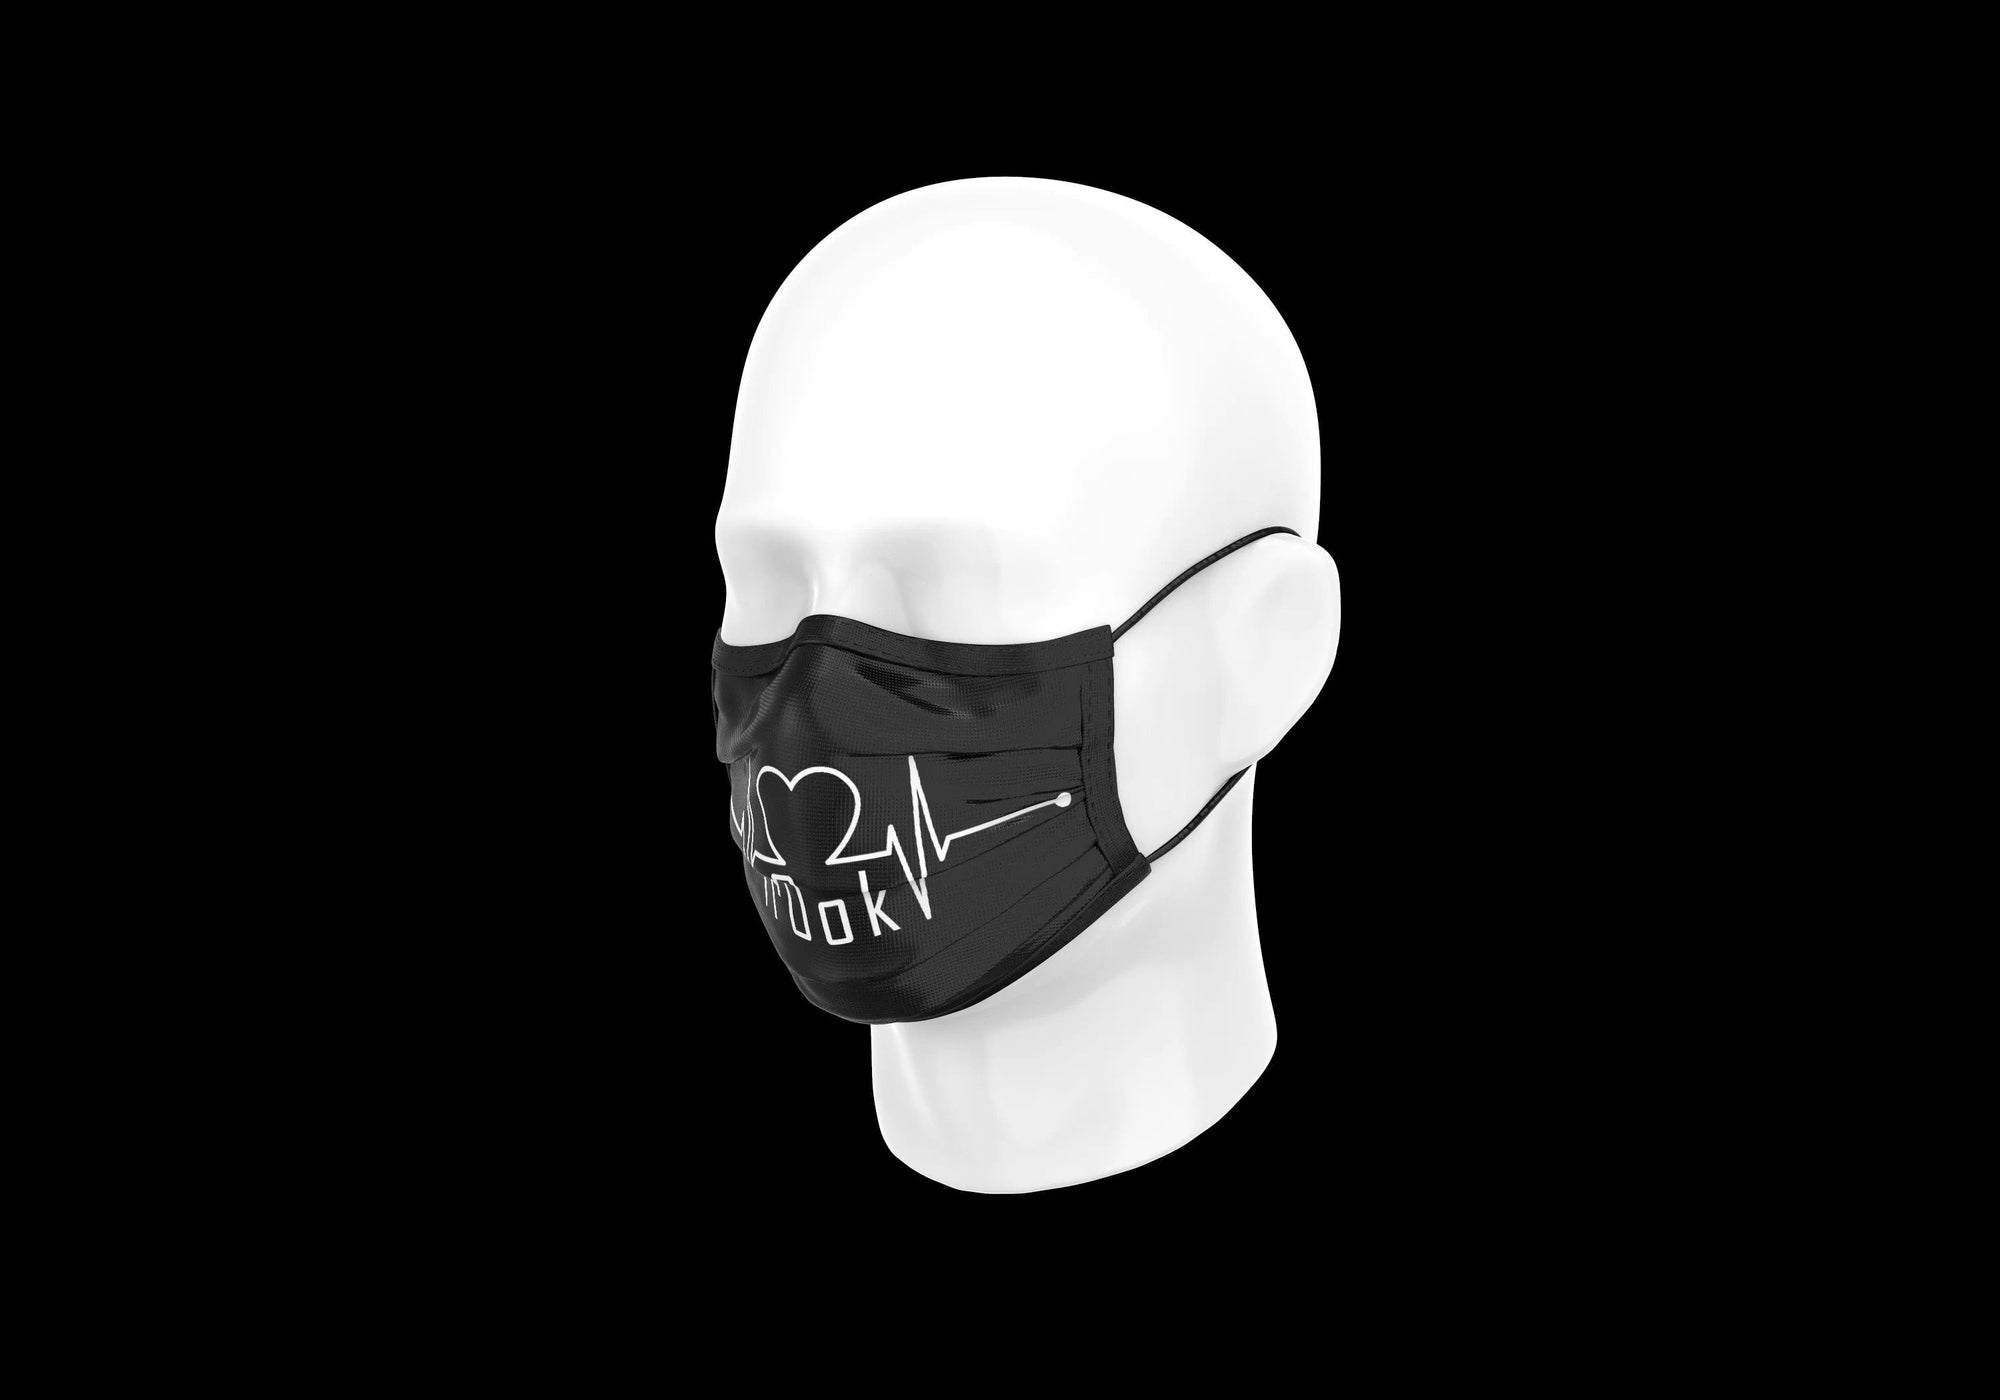 r0ok-clothing-co r0ok<3 MASK - BLACK.